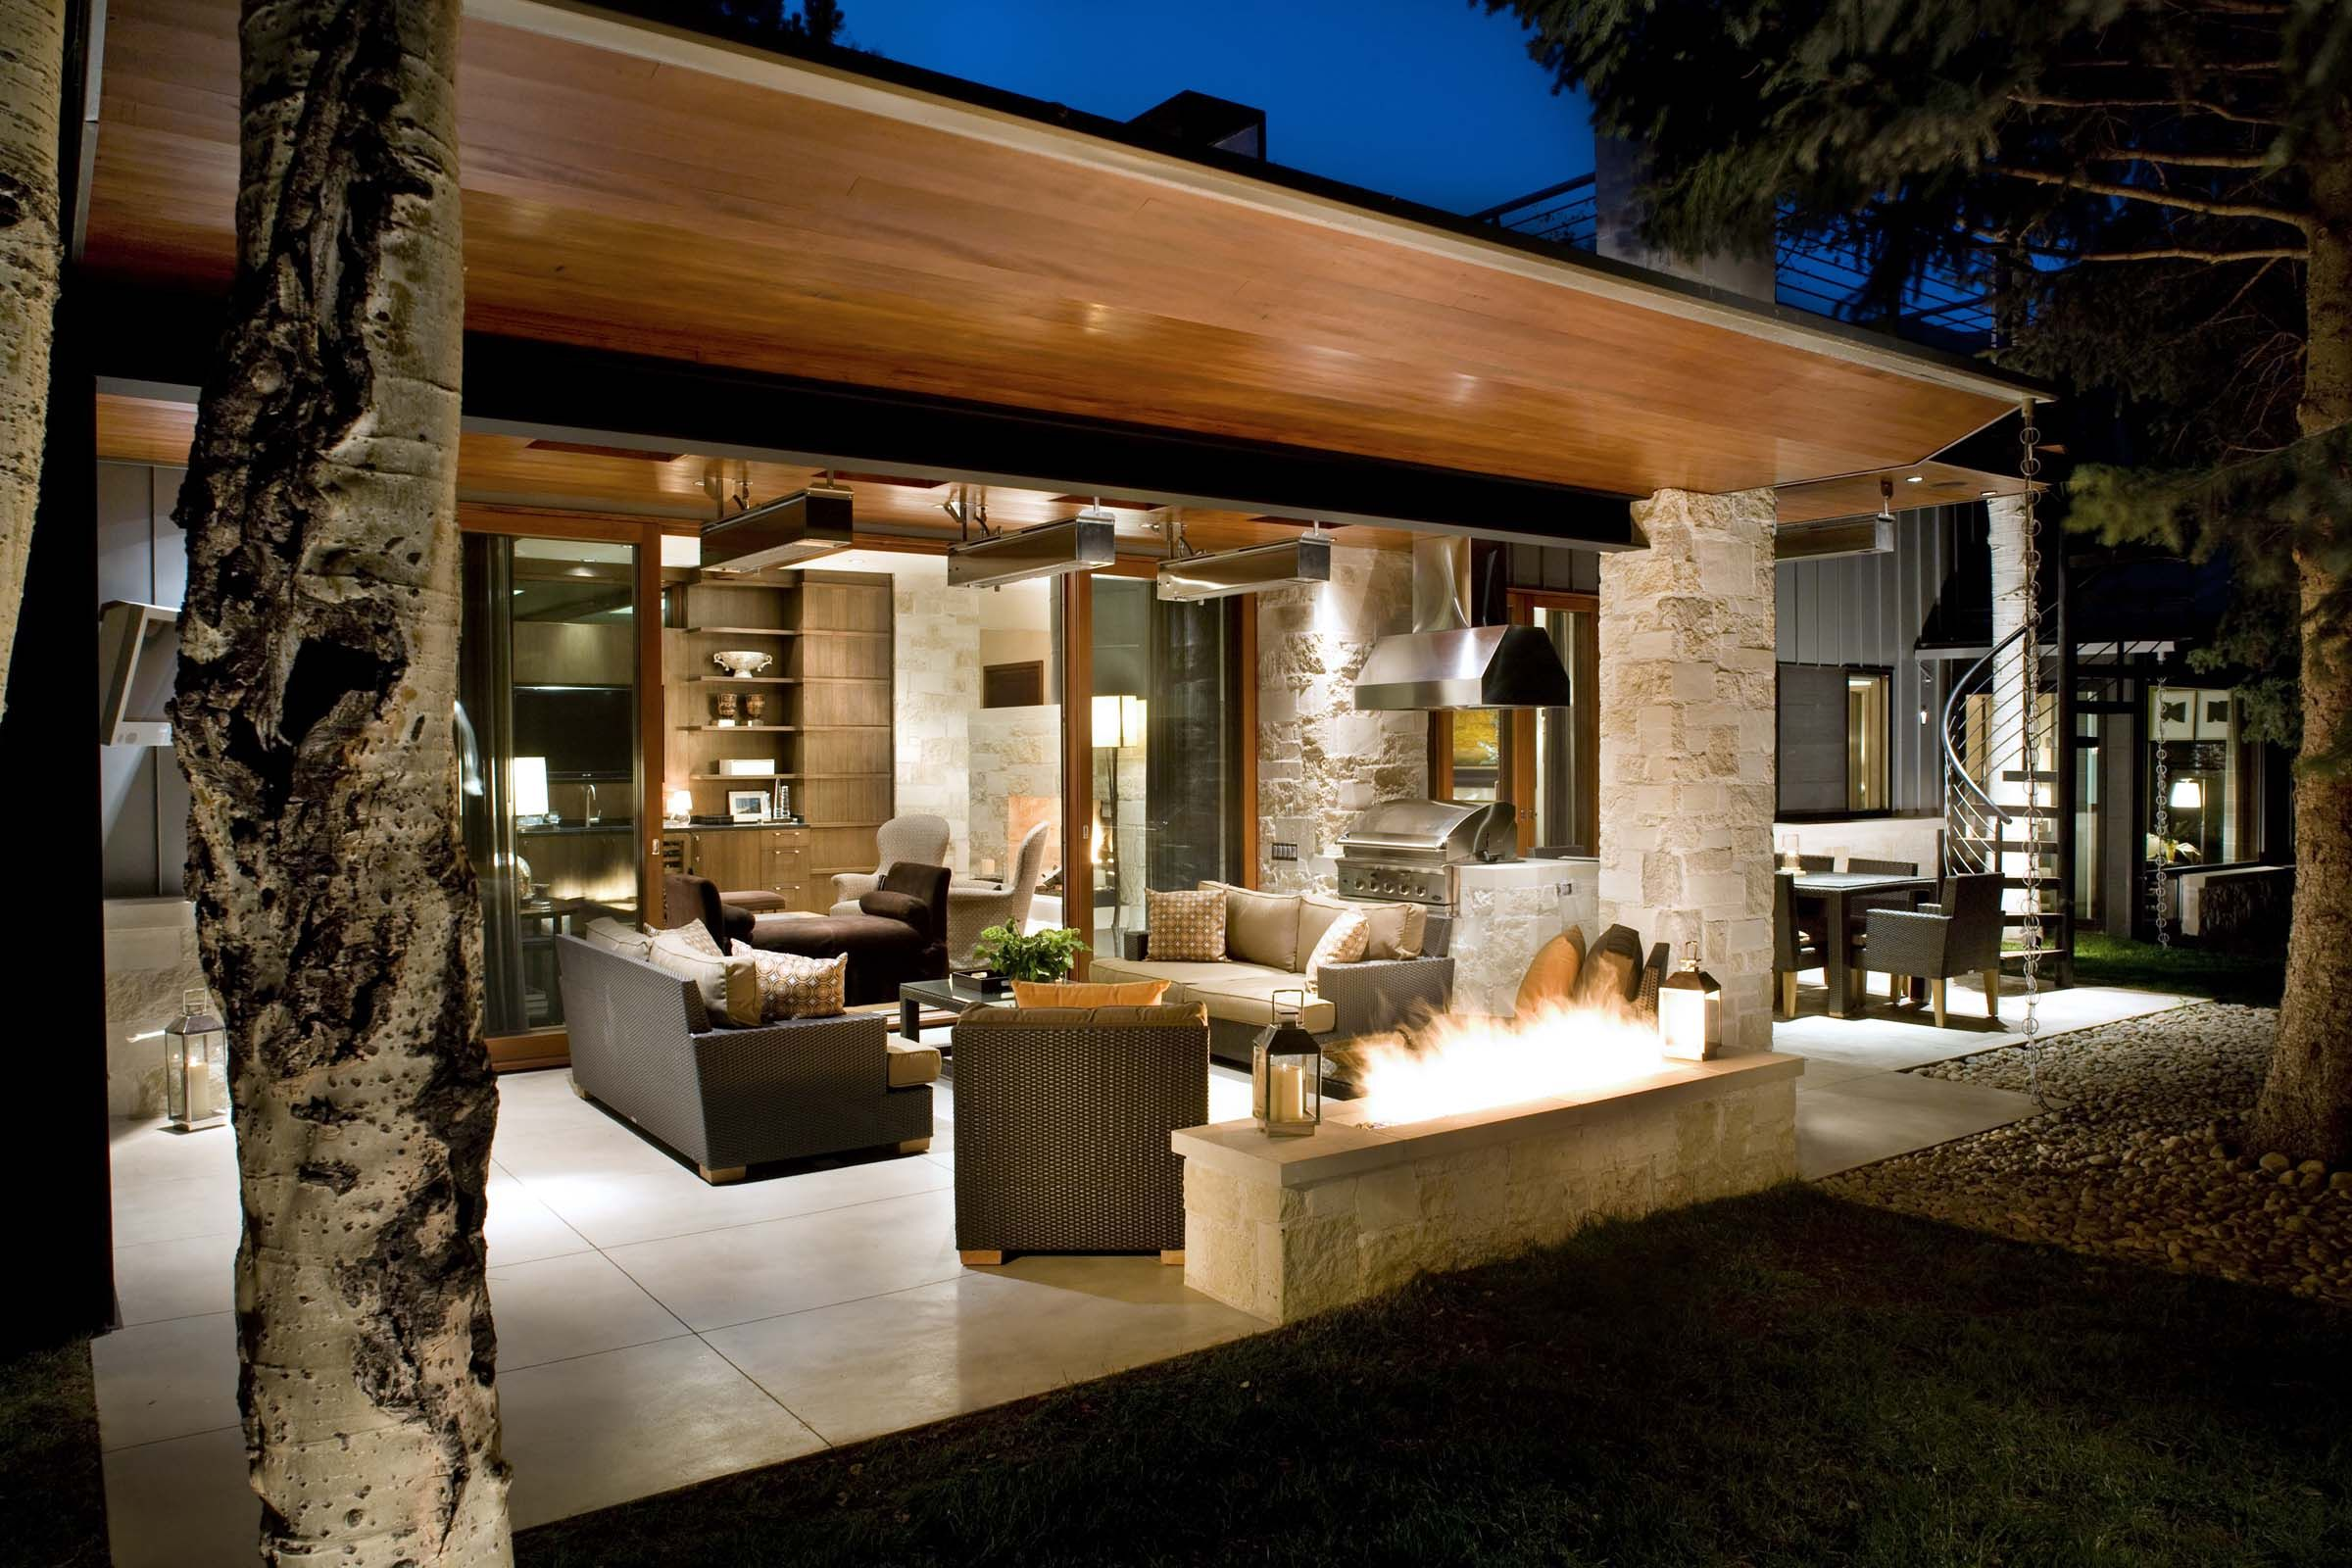 1000+ images about Outdoor ntertaining on Pinterest - ^